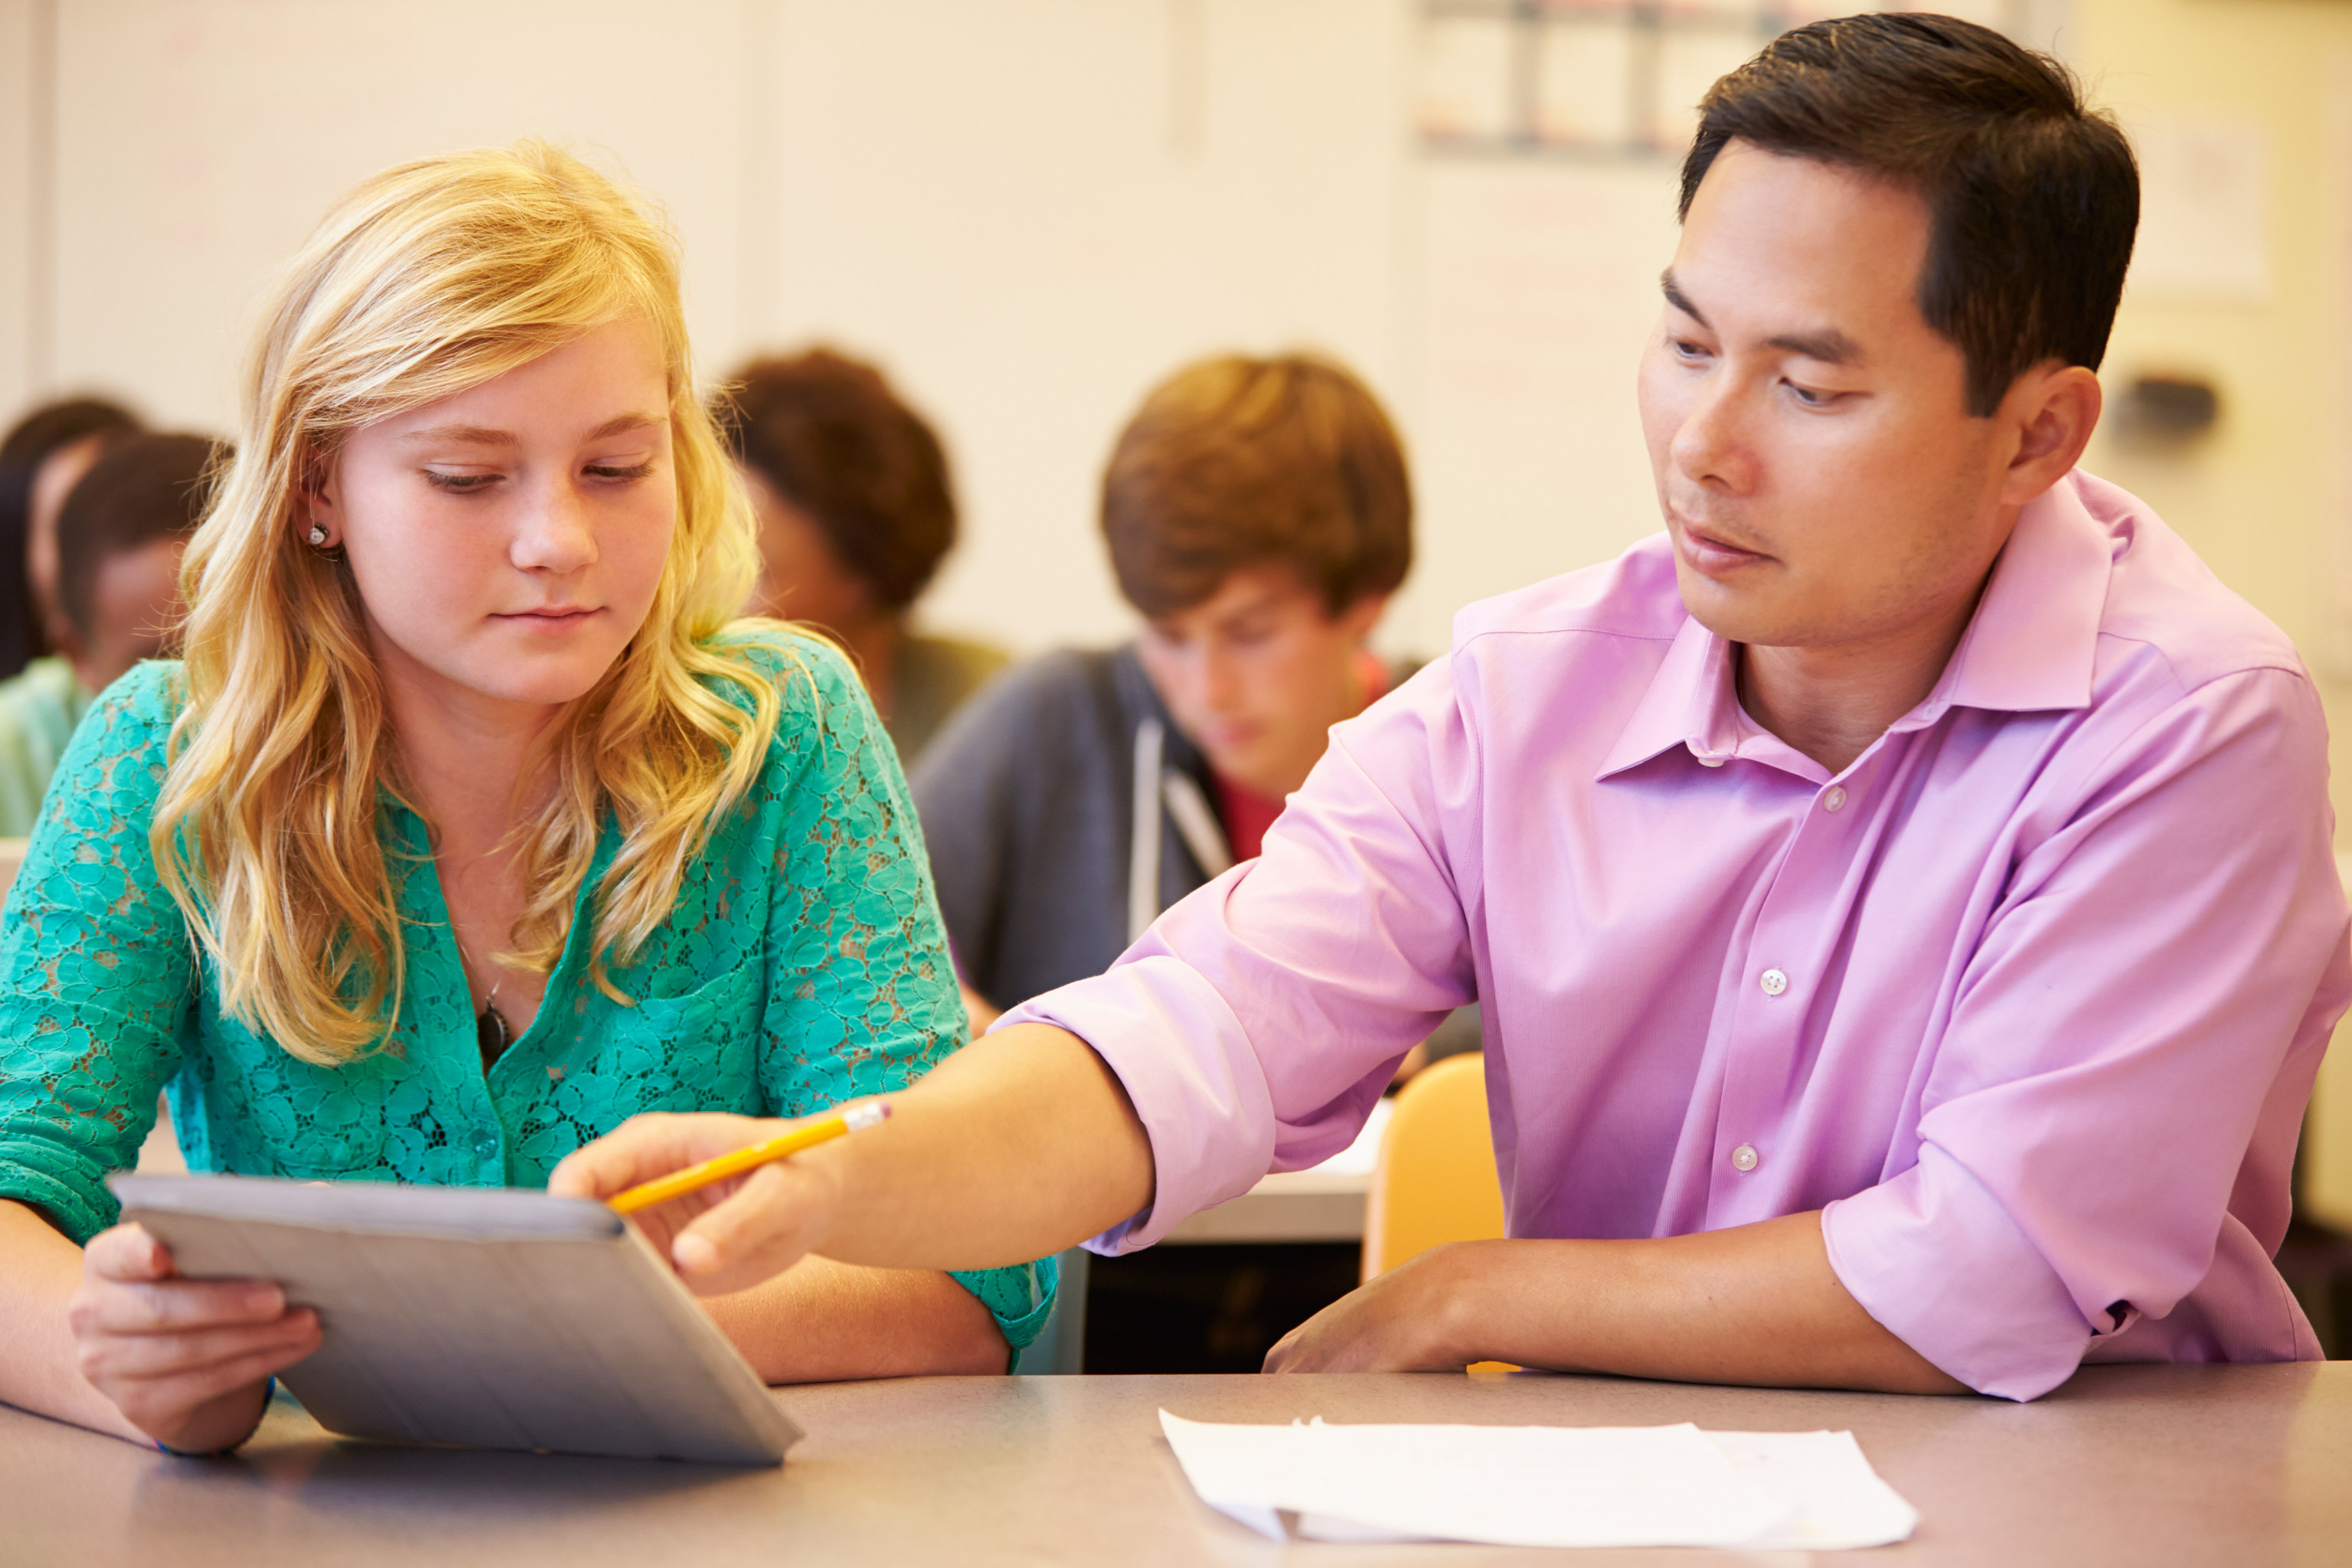 Teacher helping student with coursework